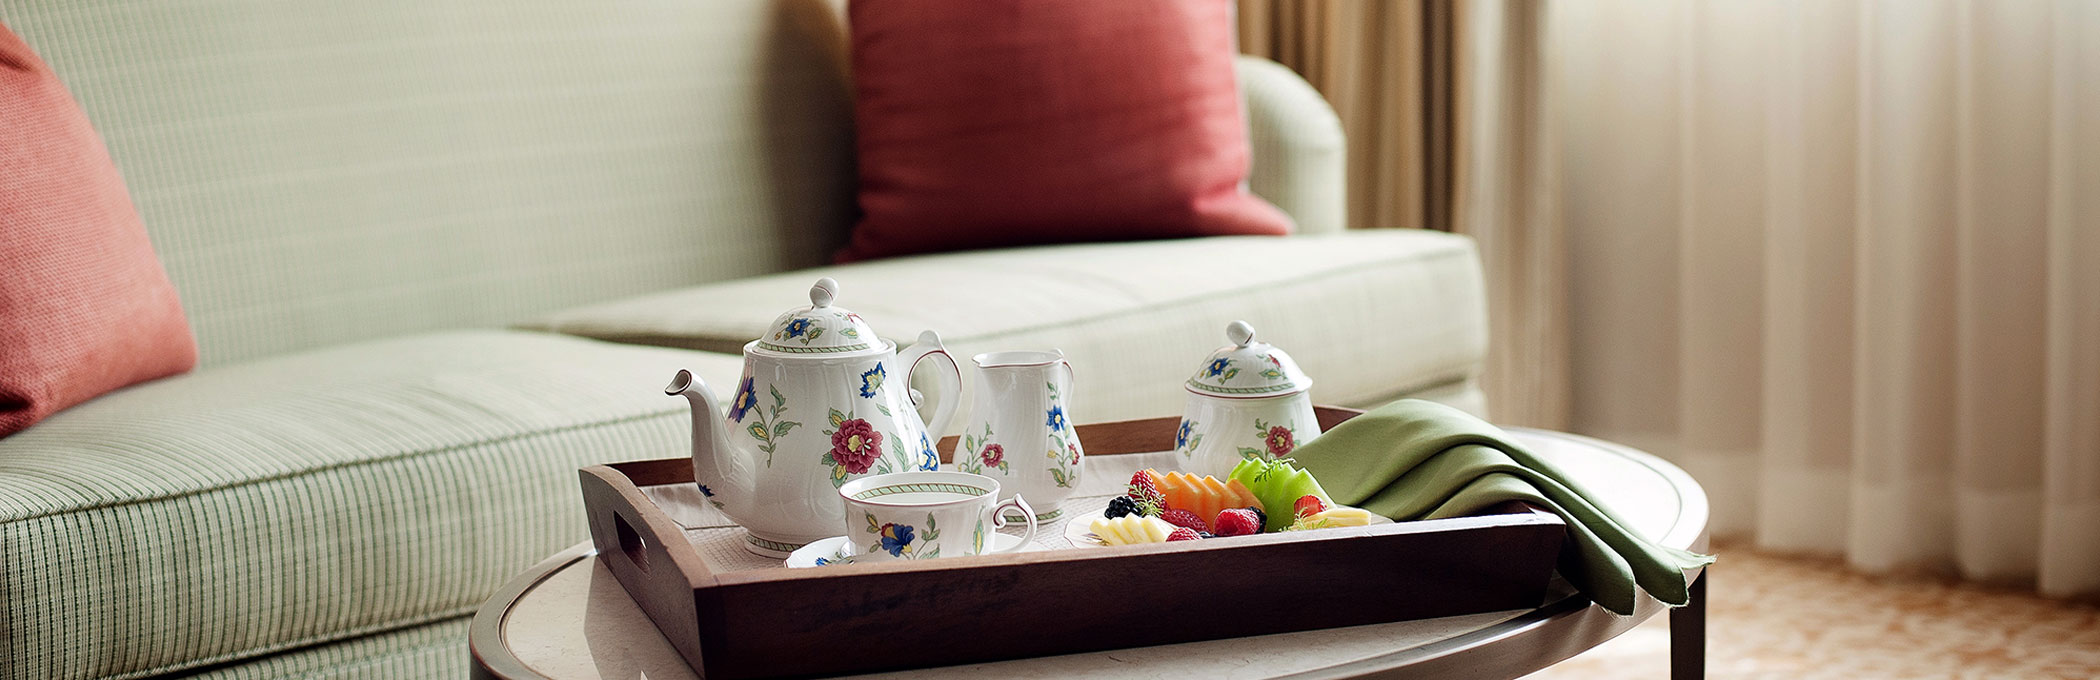 teapot and teacup on a tray on a table in front of a green couch